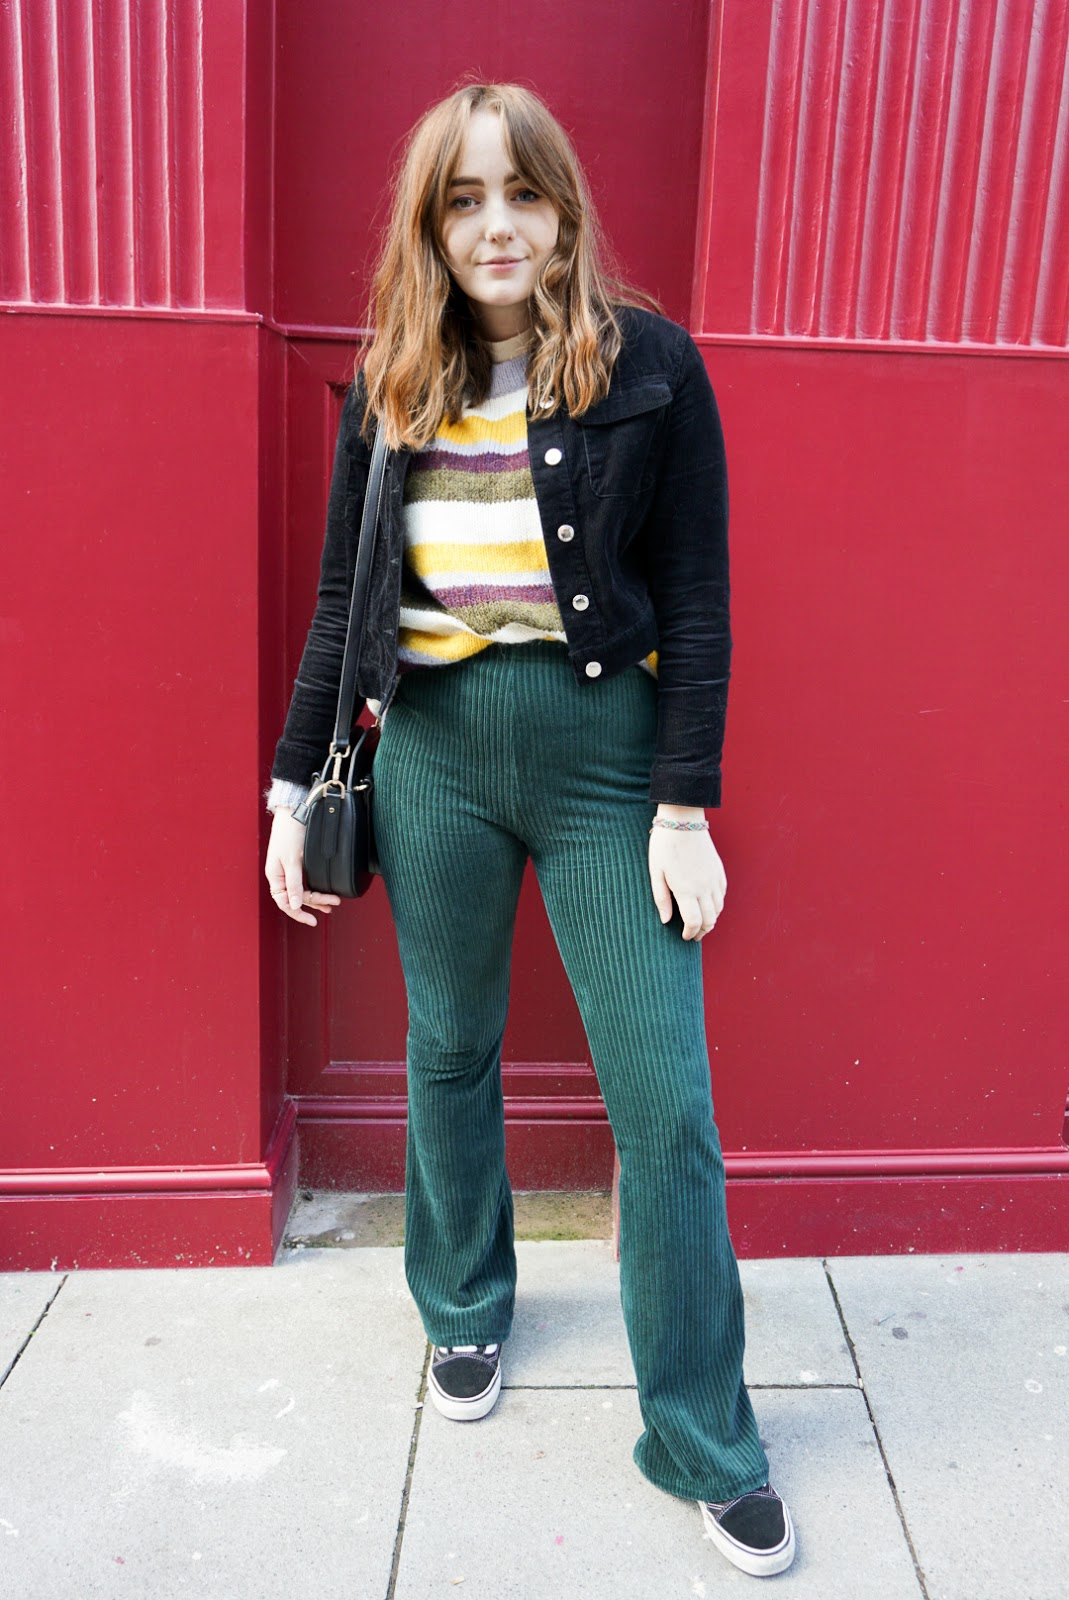 fall 2018 outfit with corduroy, oversized knitwear and vans